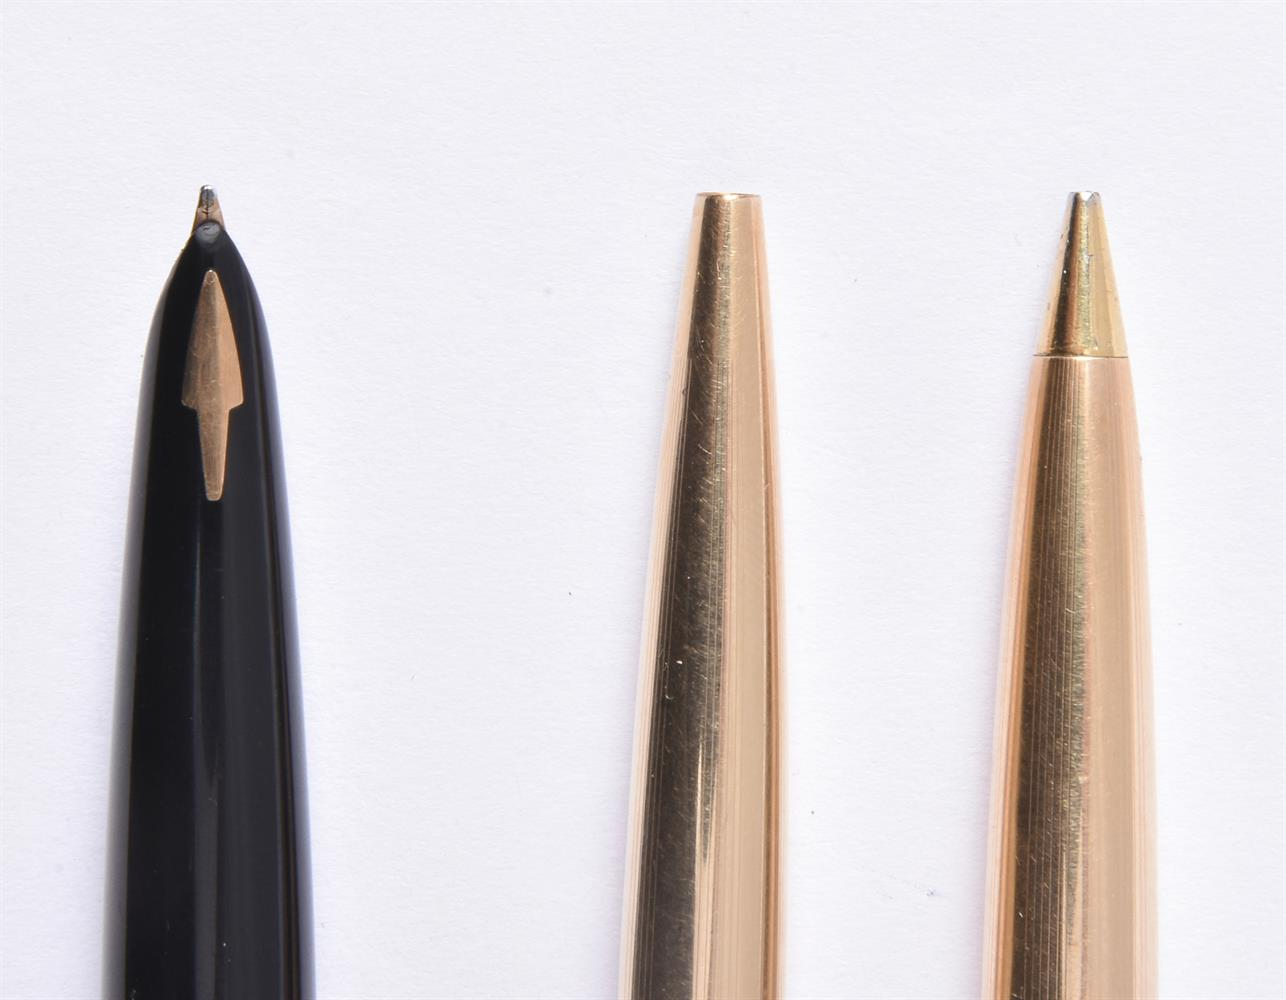 Parker, 61 Custom Insignia, a gold plated fountain pen, ballpoint pen and propelling pencil - Image 2 of 3